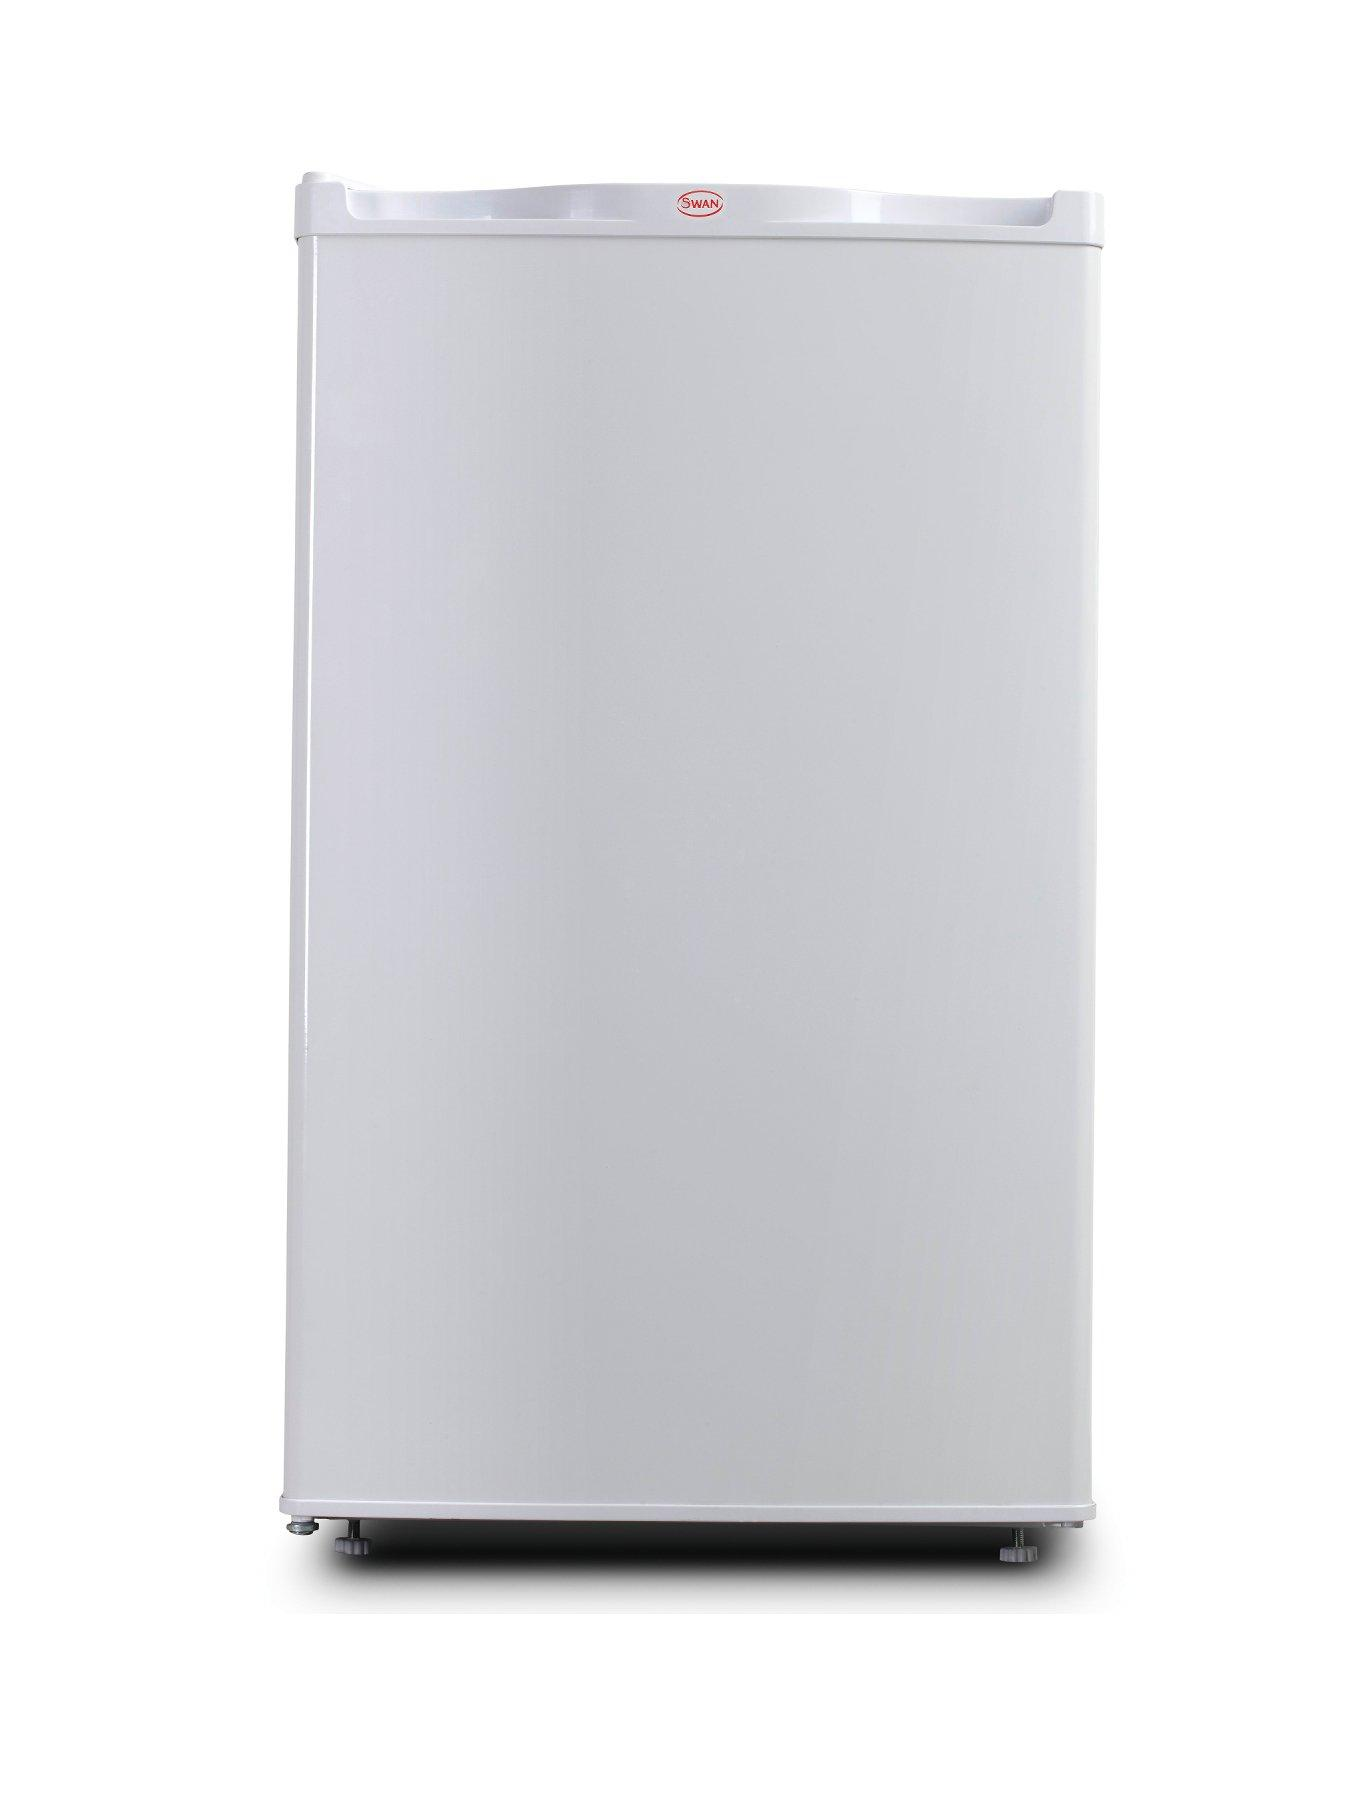 SR5191W 50cm Under-counter Fridge with Ice Box - White at Littlewoods